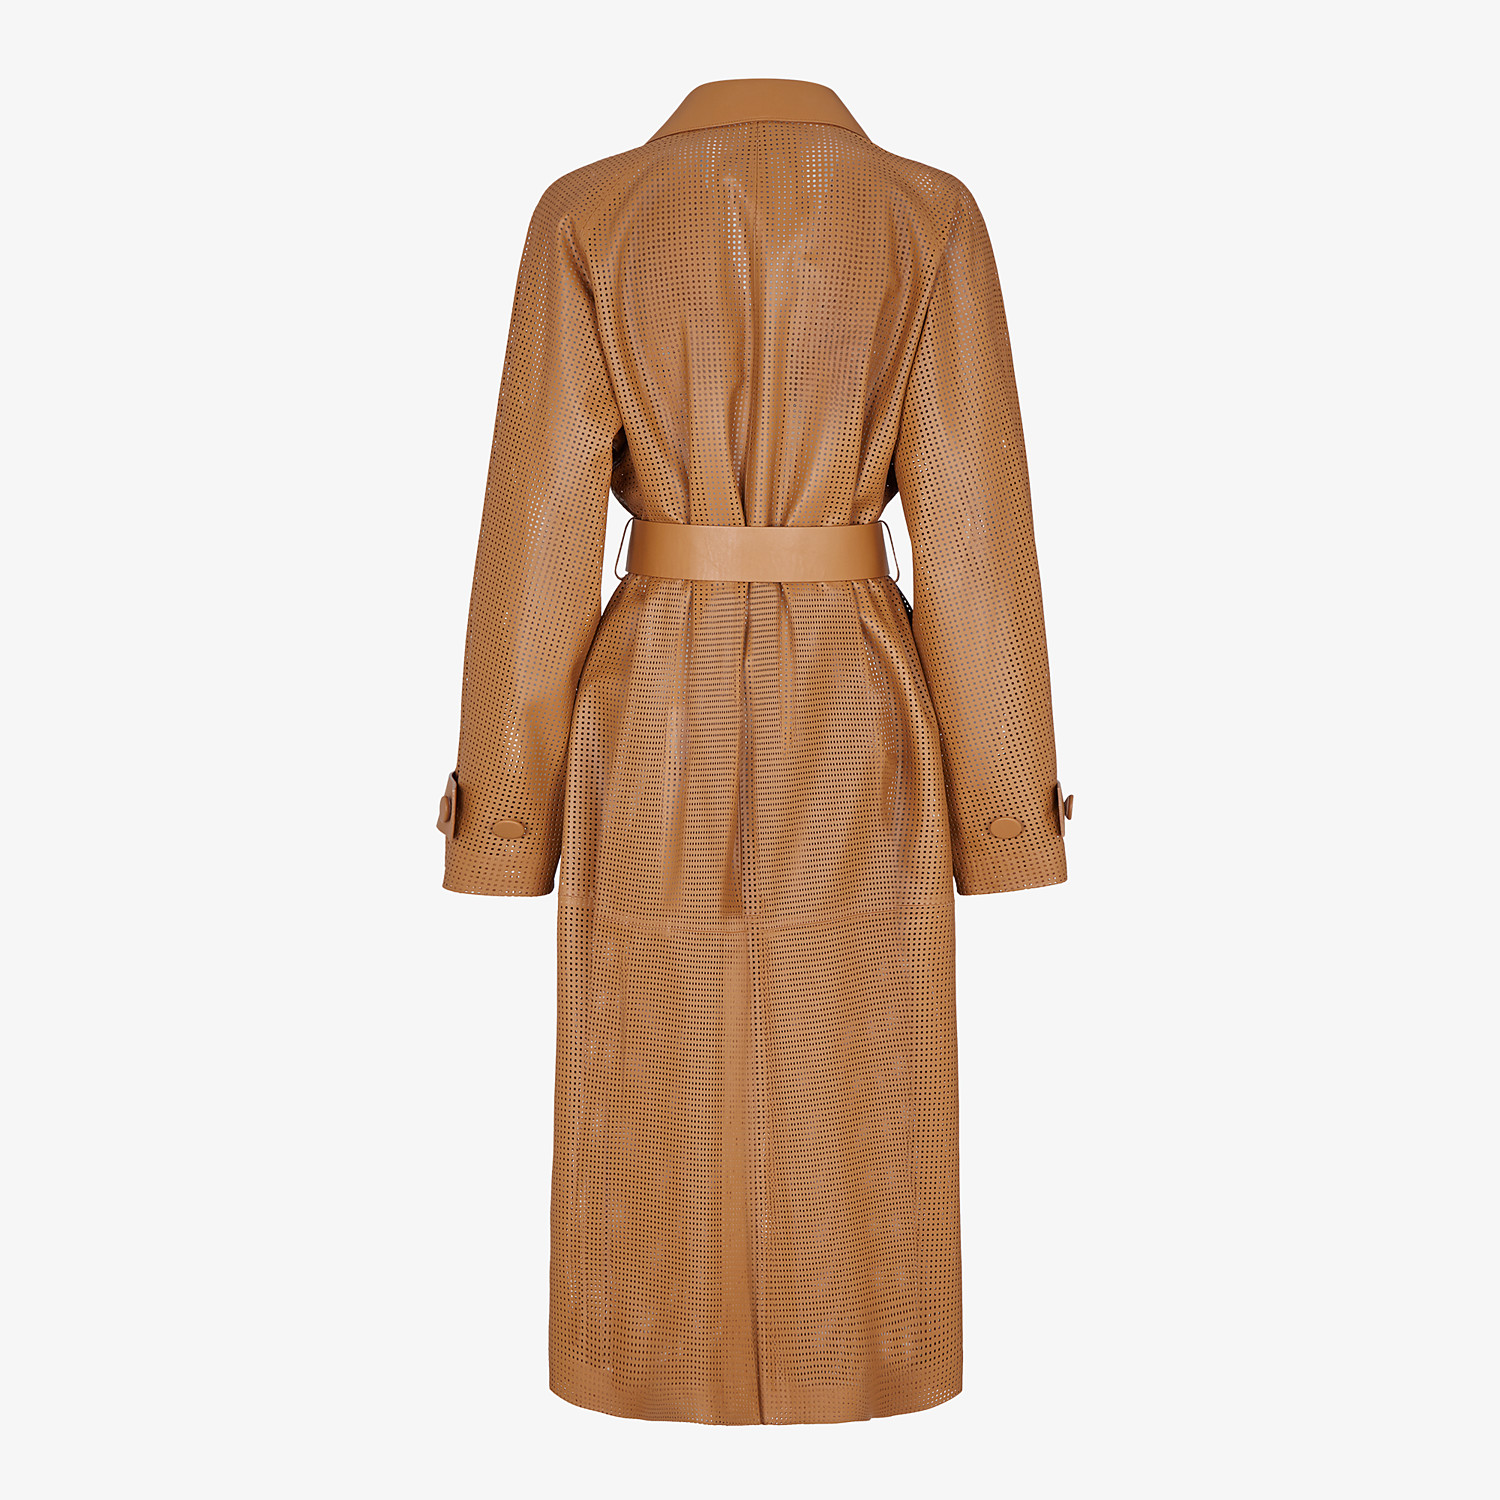 FENDI OVERCOAT - Brown leather trench coat - view 2 detail